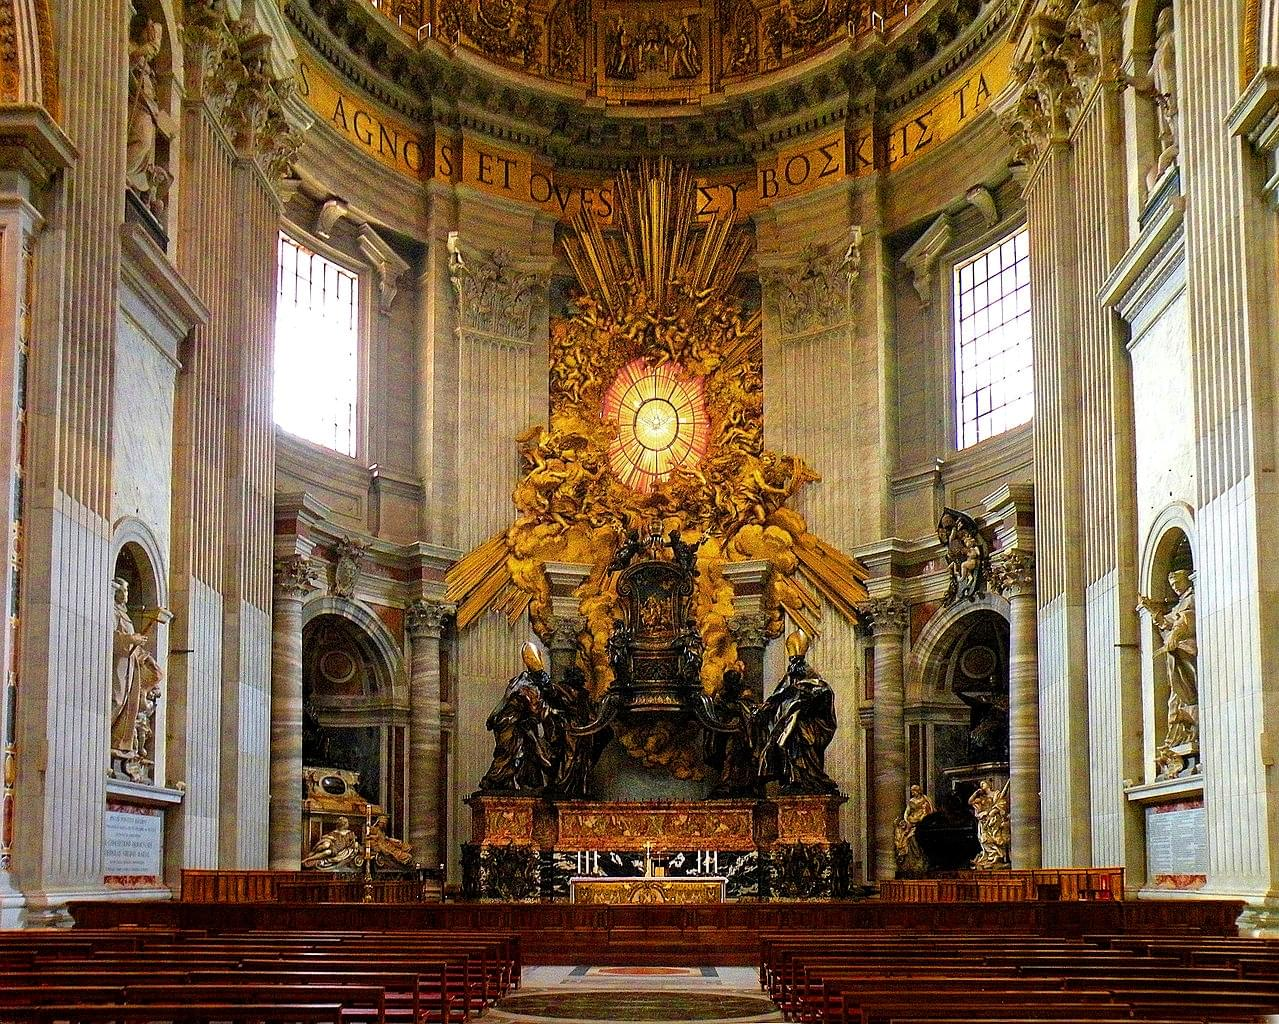 The cathedra Petri: the seat of St. Peter